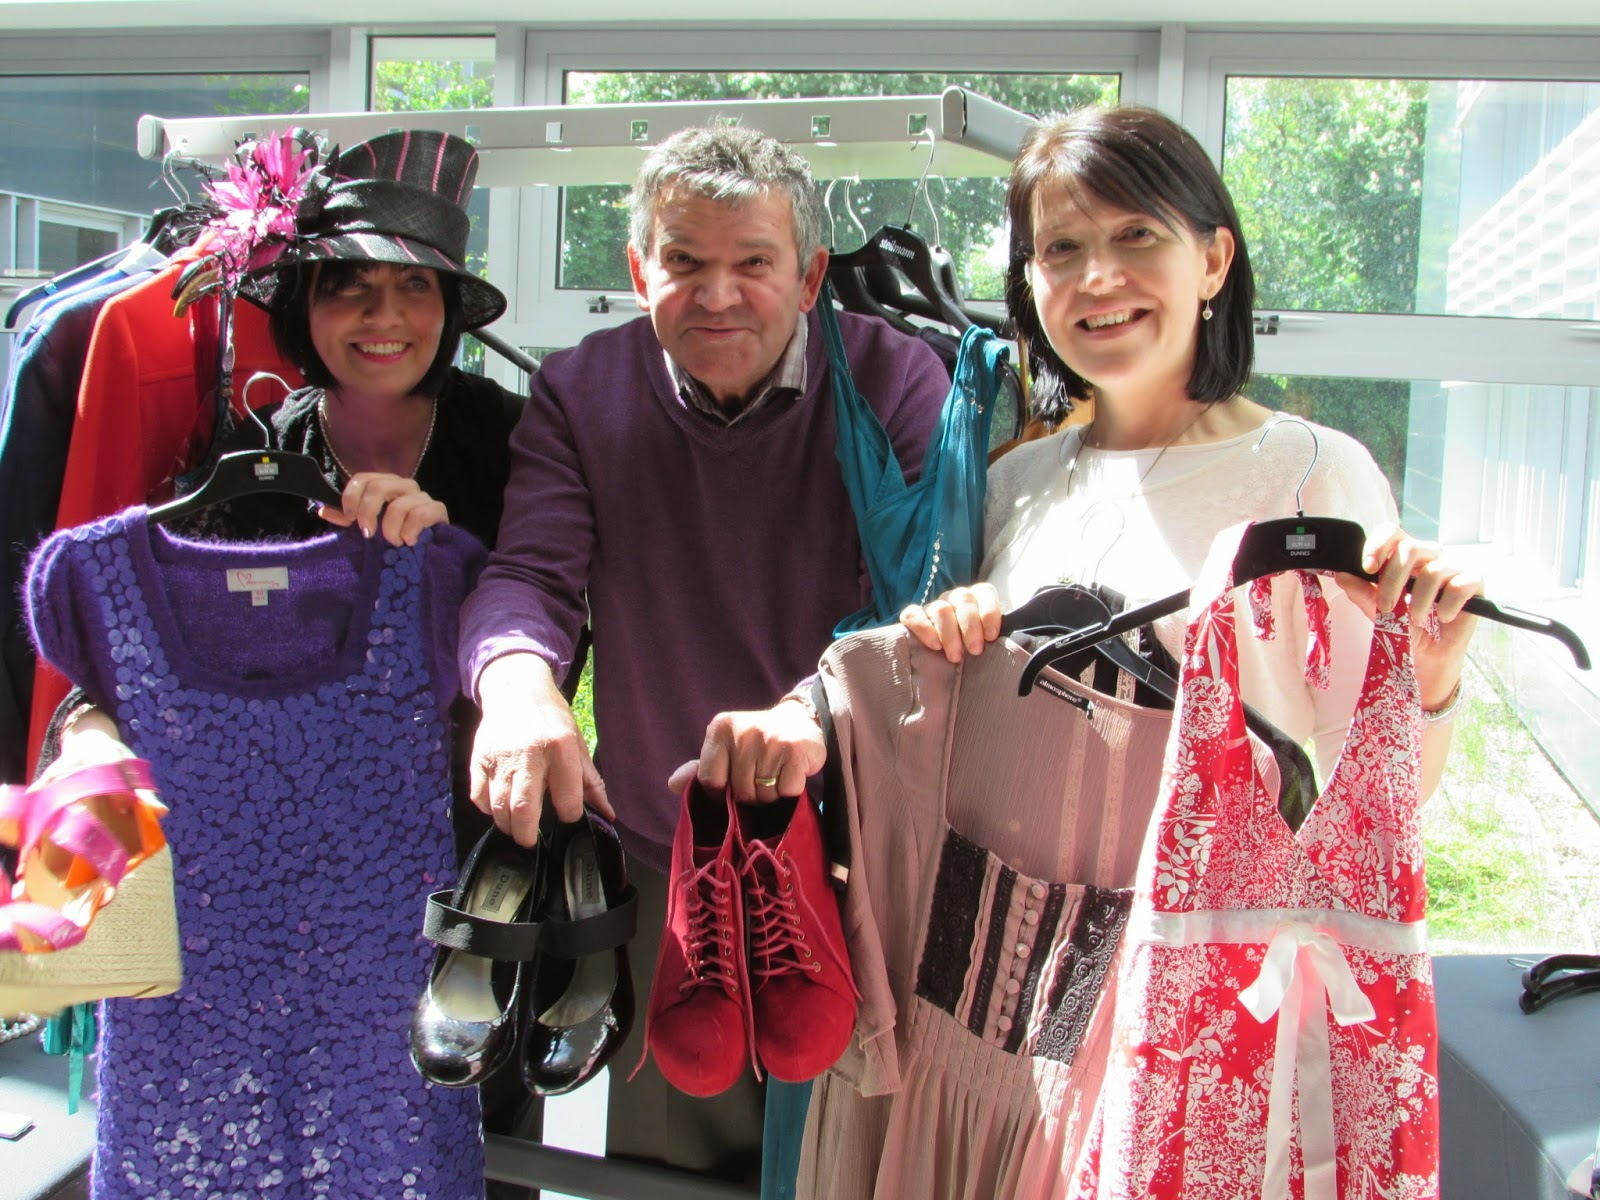 Council hosts Big Upcycle Pop-Up Sale for charity